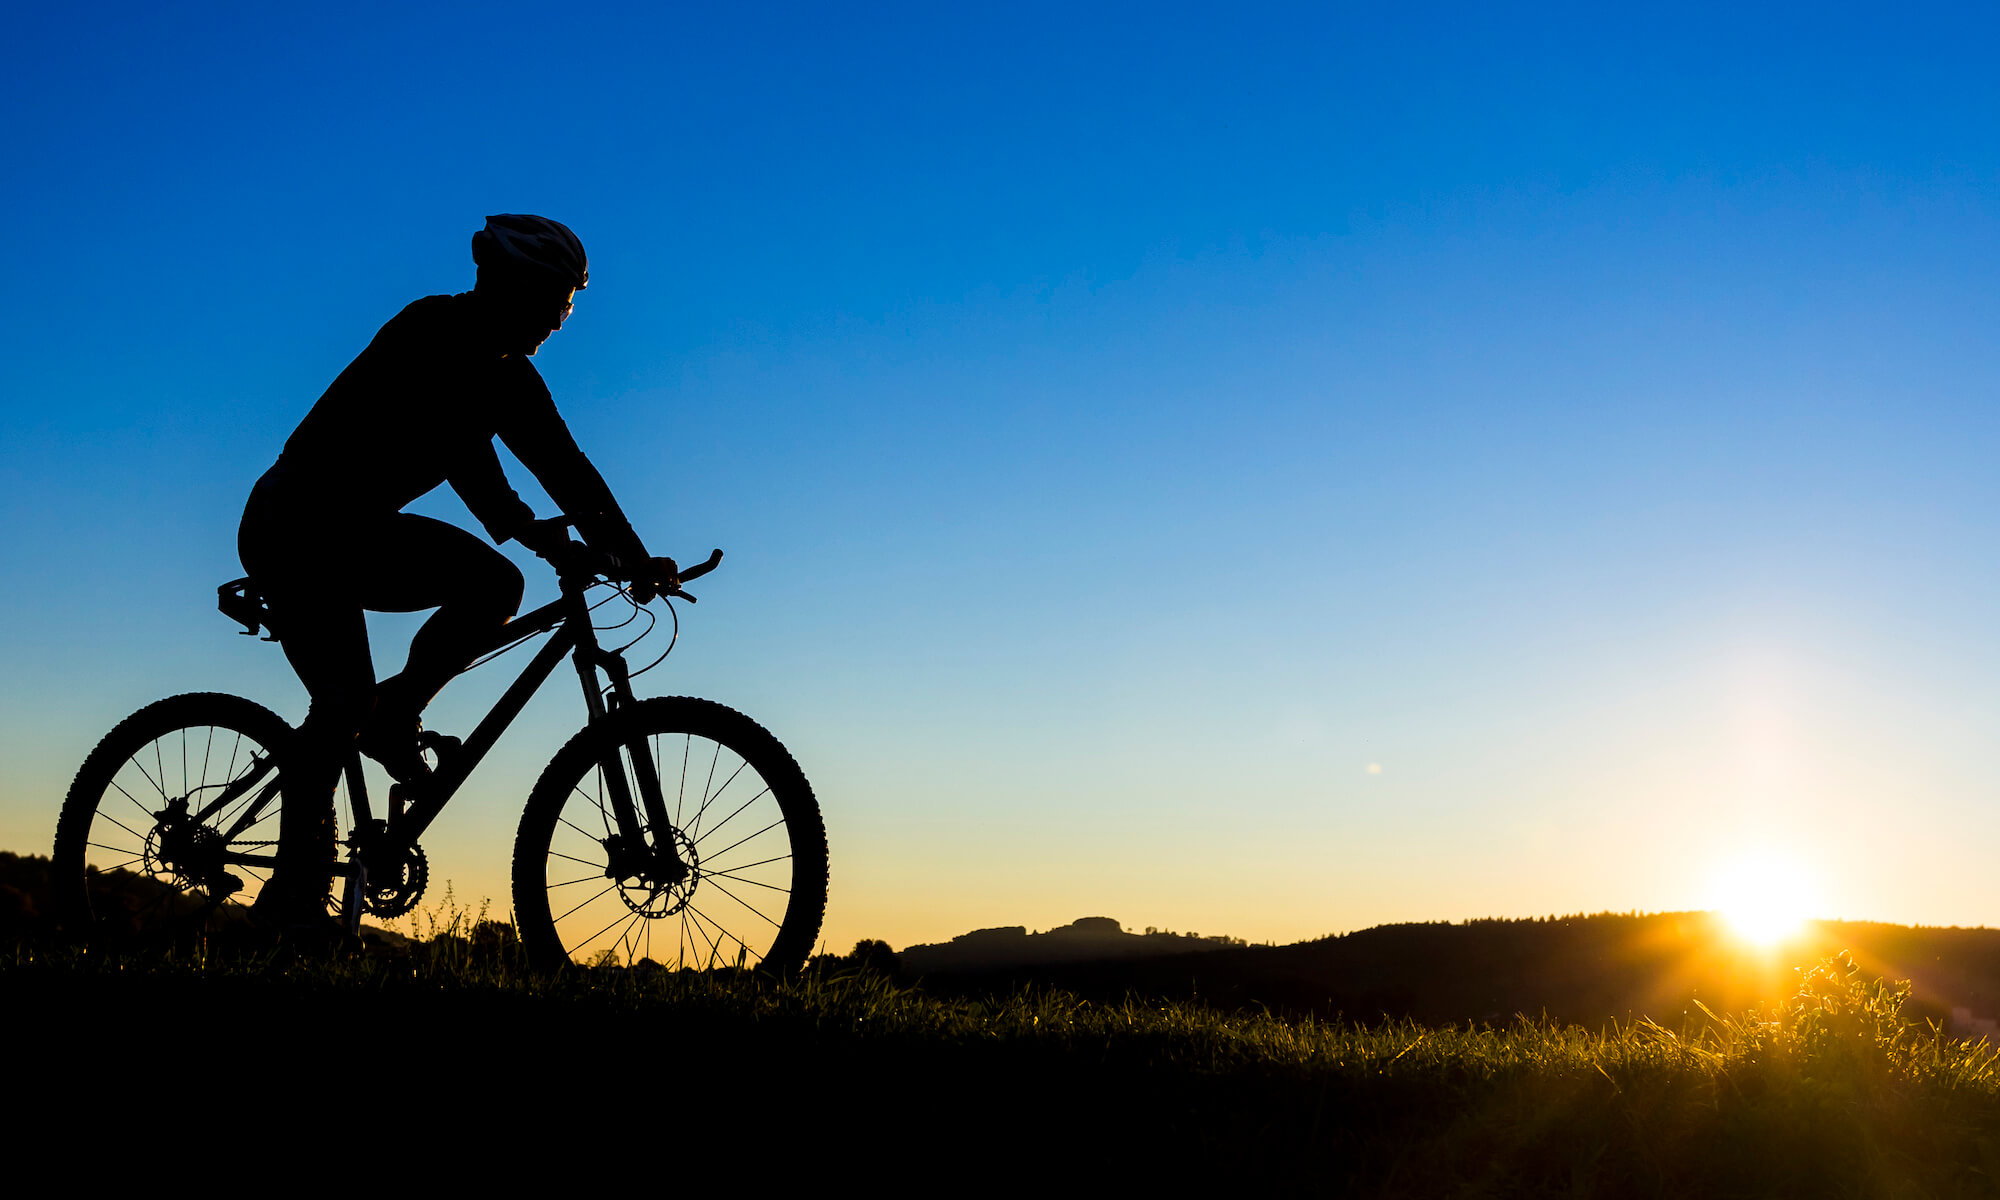 Germany, Winterbach, cyclist on a mountain bike at sunset